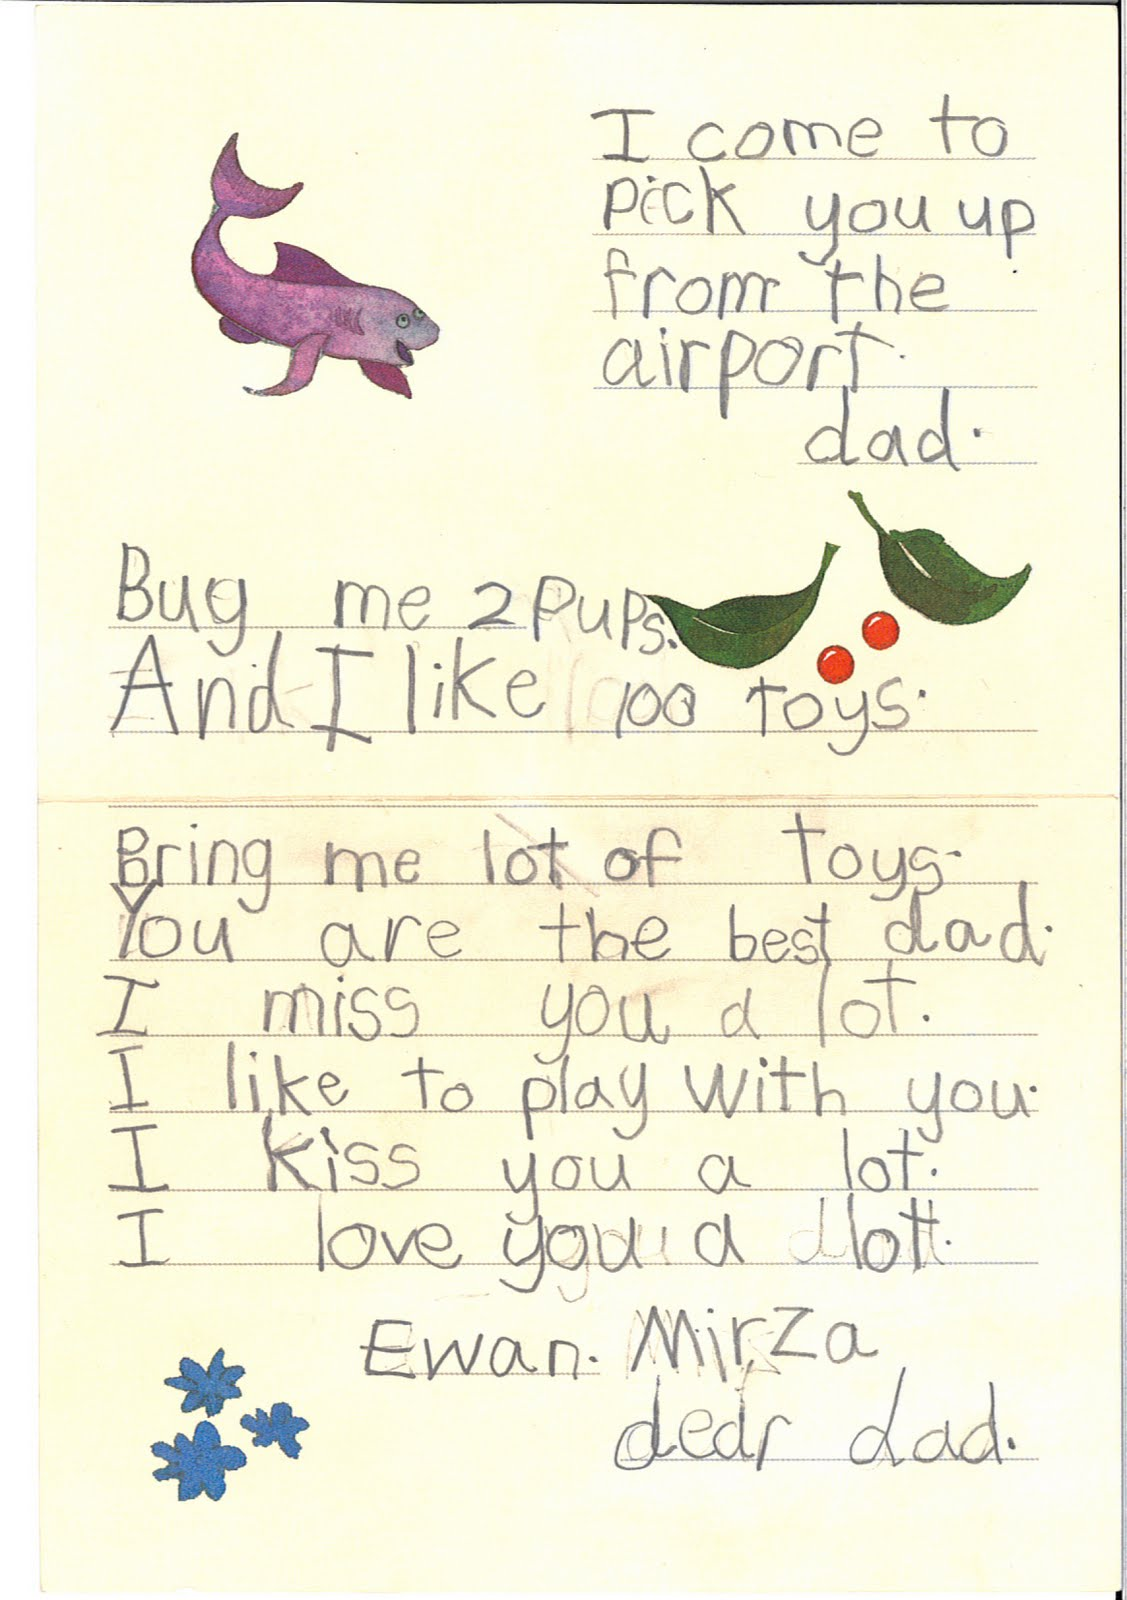 ewans first letter to dad